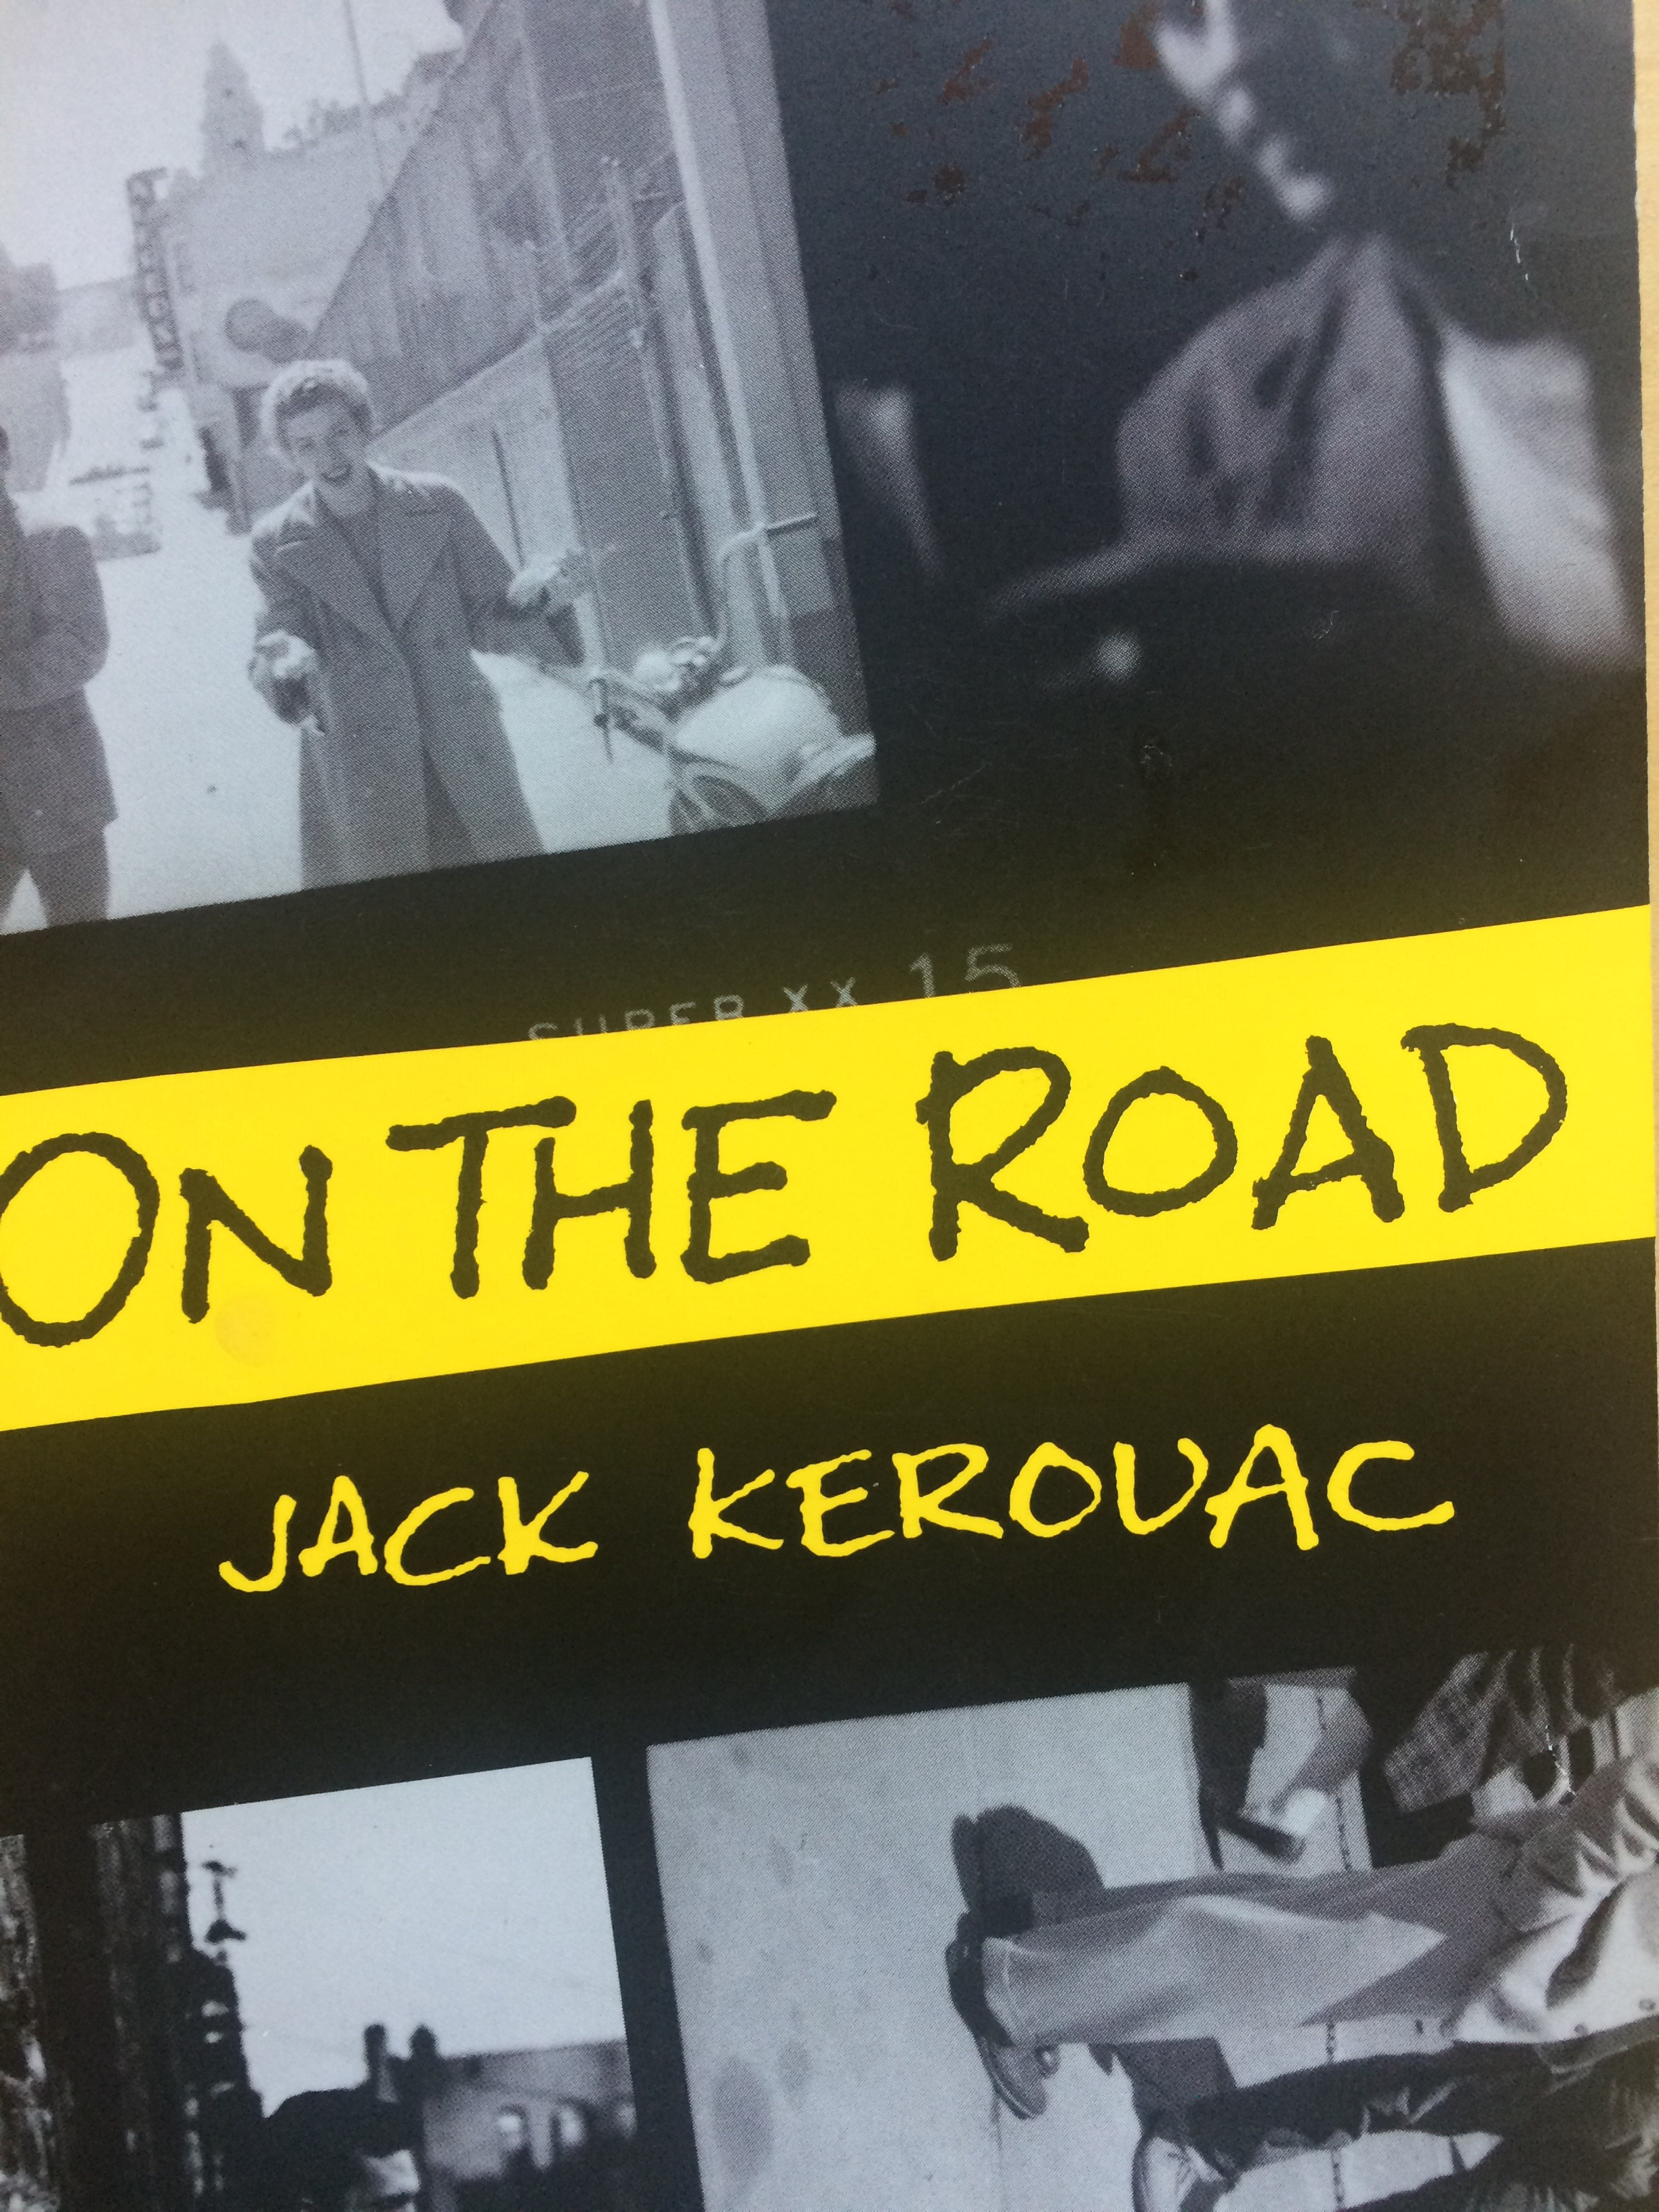 the plot summary of jack kerouacs novel on the road Detailed plot synopsis reviews of on the road in the beginning of the novel, sal paradise, a young writer, is living in written by jack kerouac as a stream of consciousness we live the feelings of the characters as they drive across america the travelling as much a part of the adventure as the arriving.